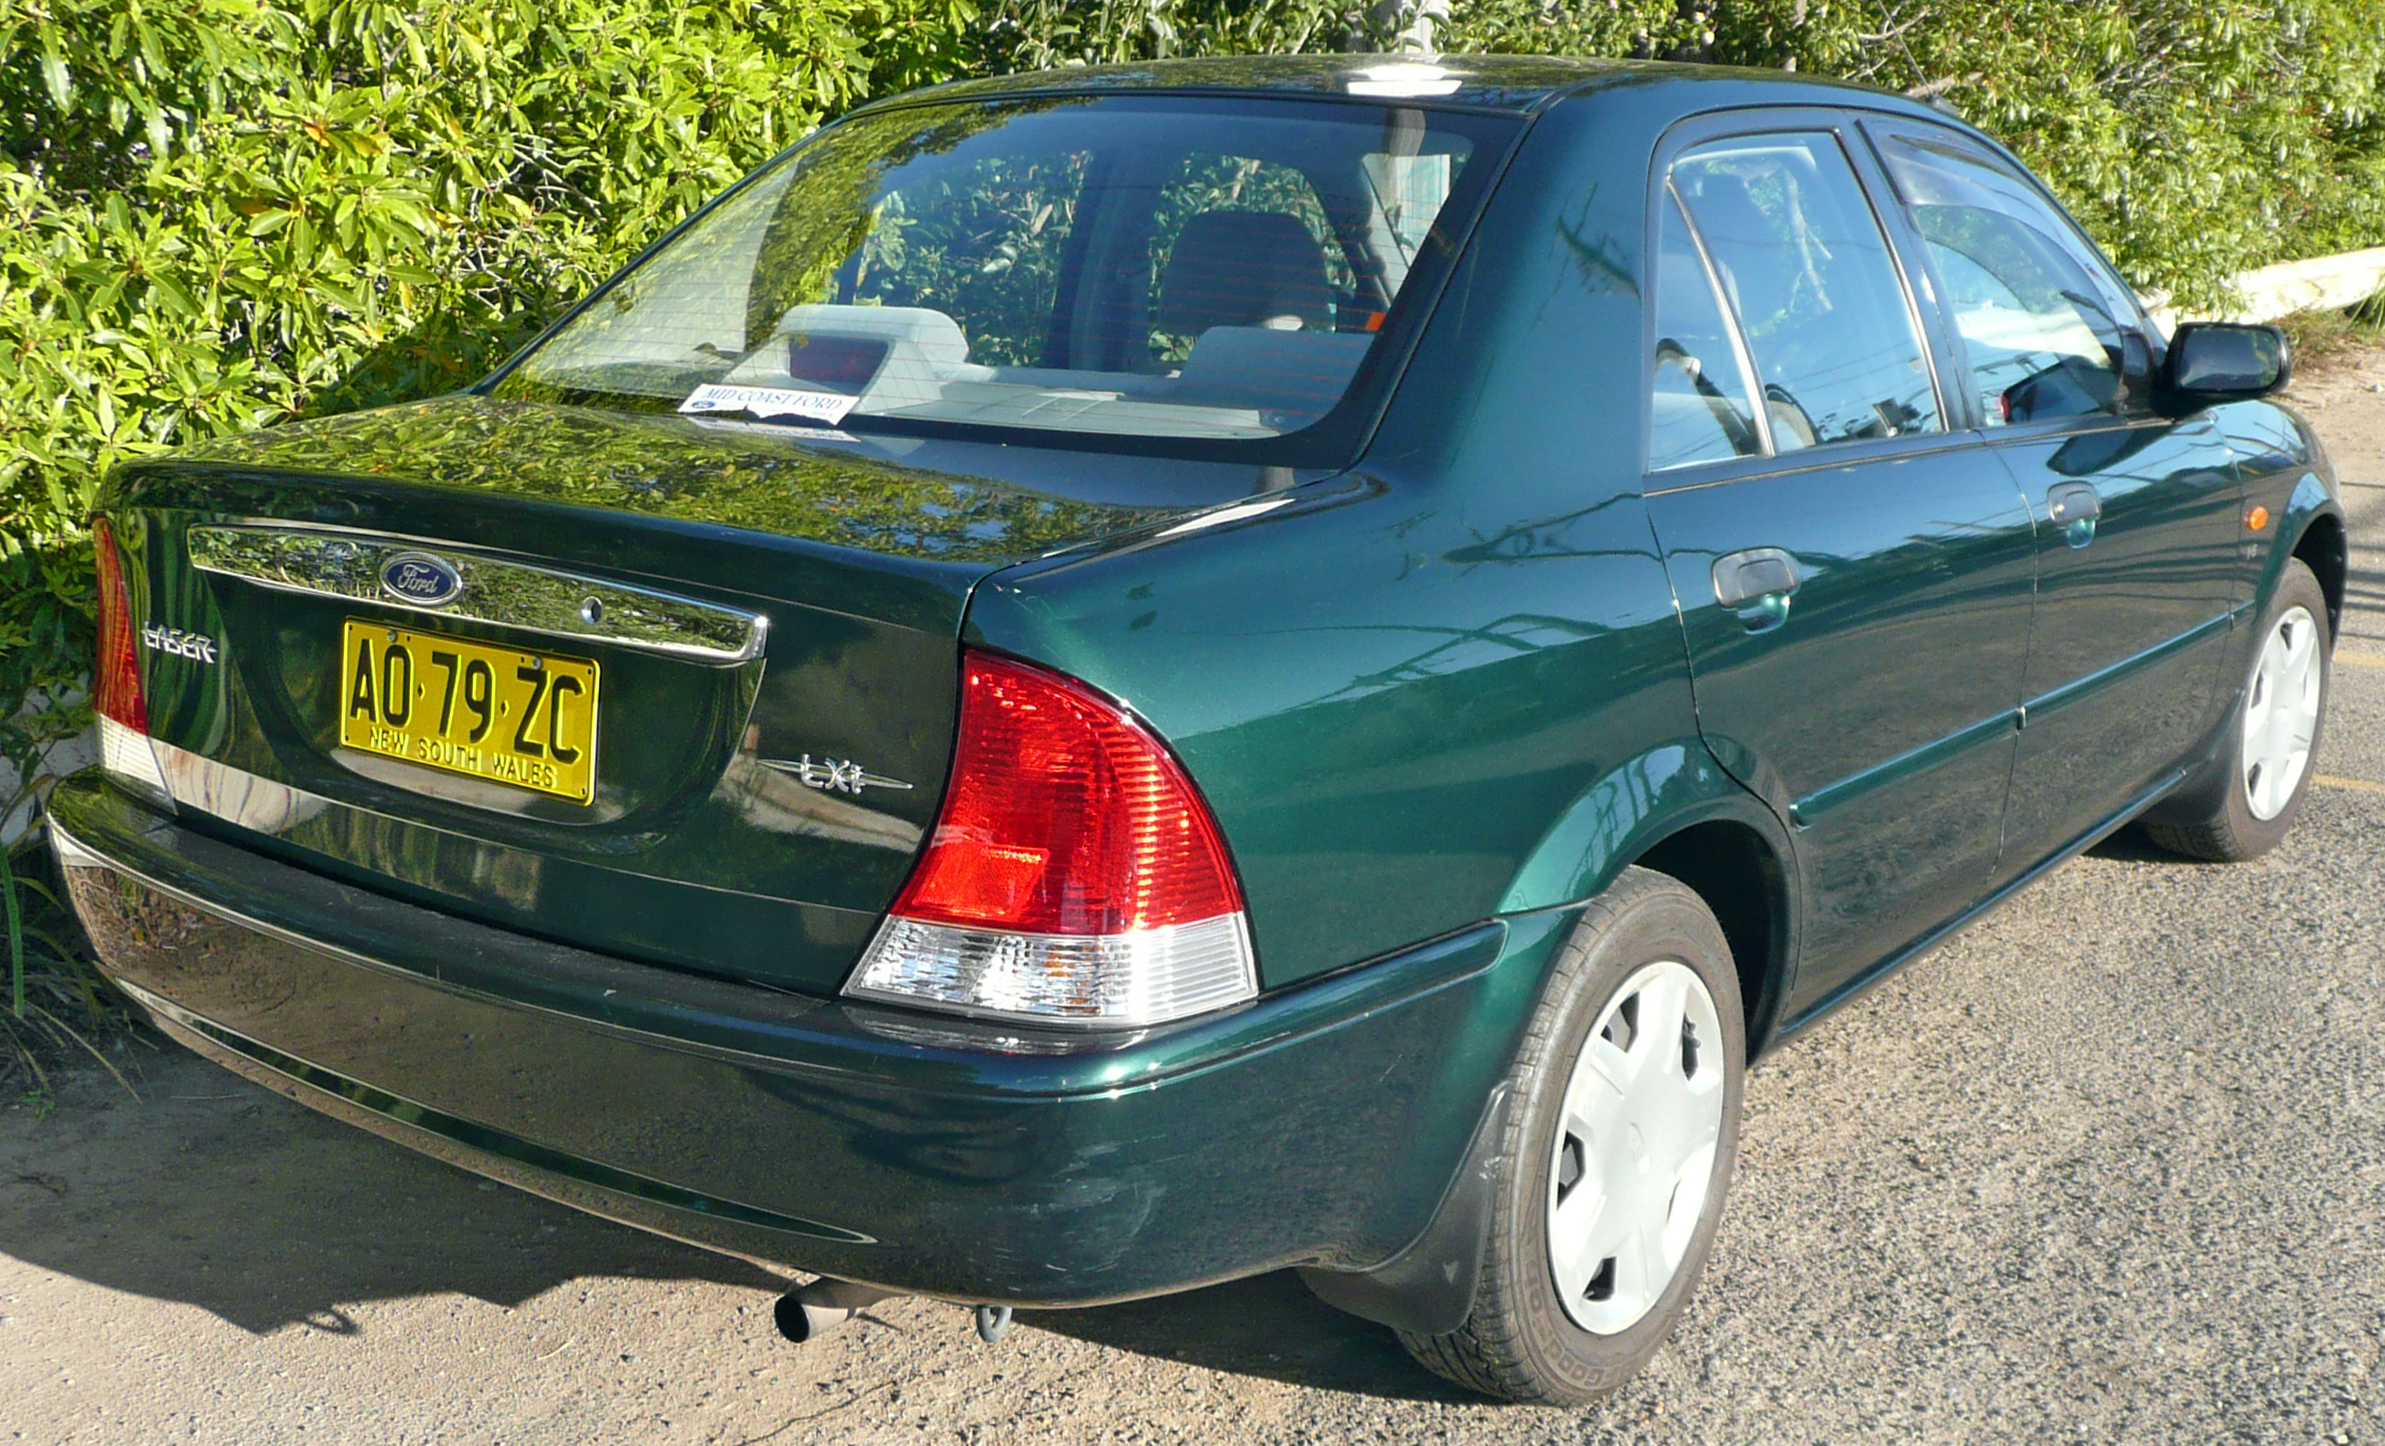 File:2001-2002 Ford Laser (KQ) LXi sedan 01.jpg